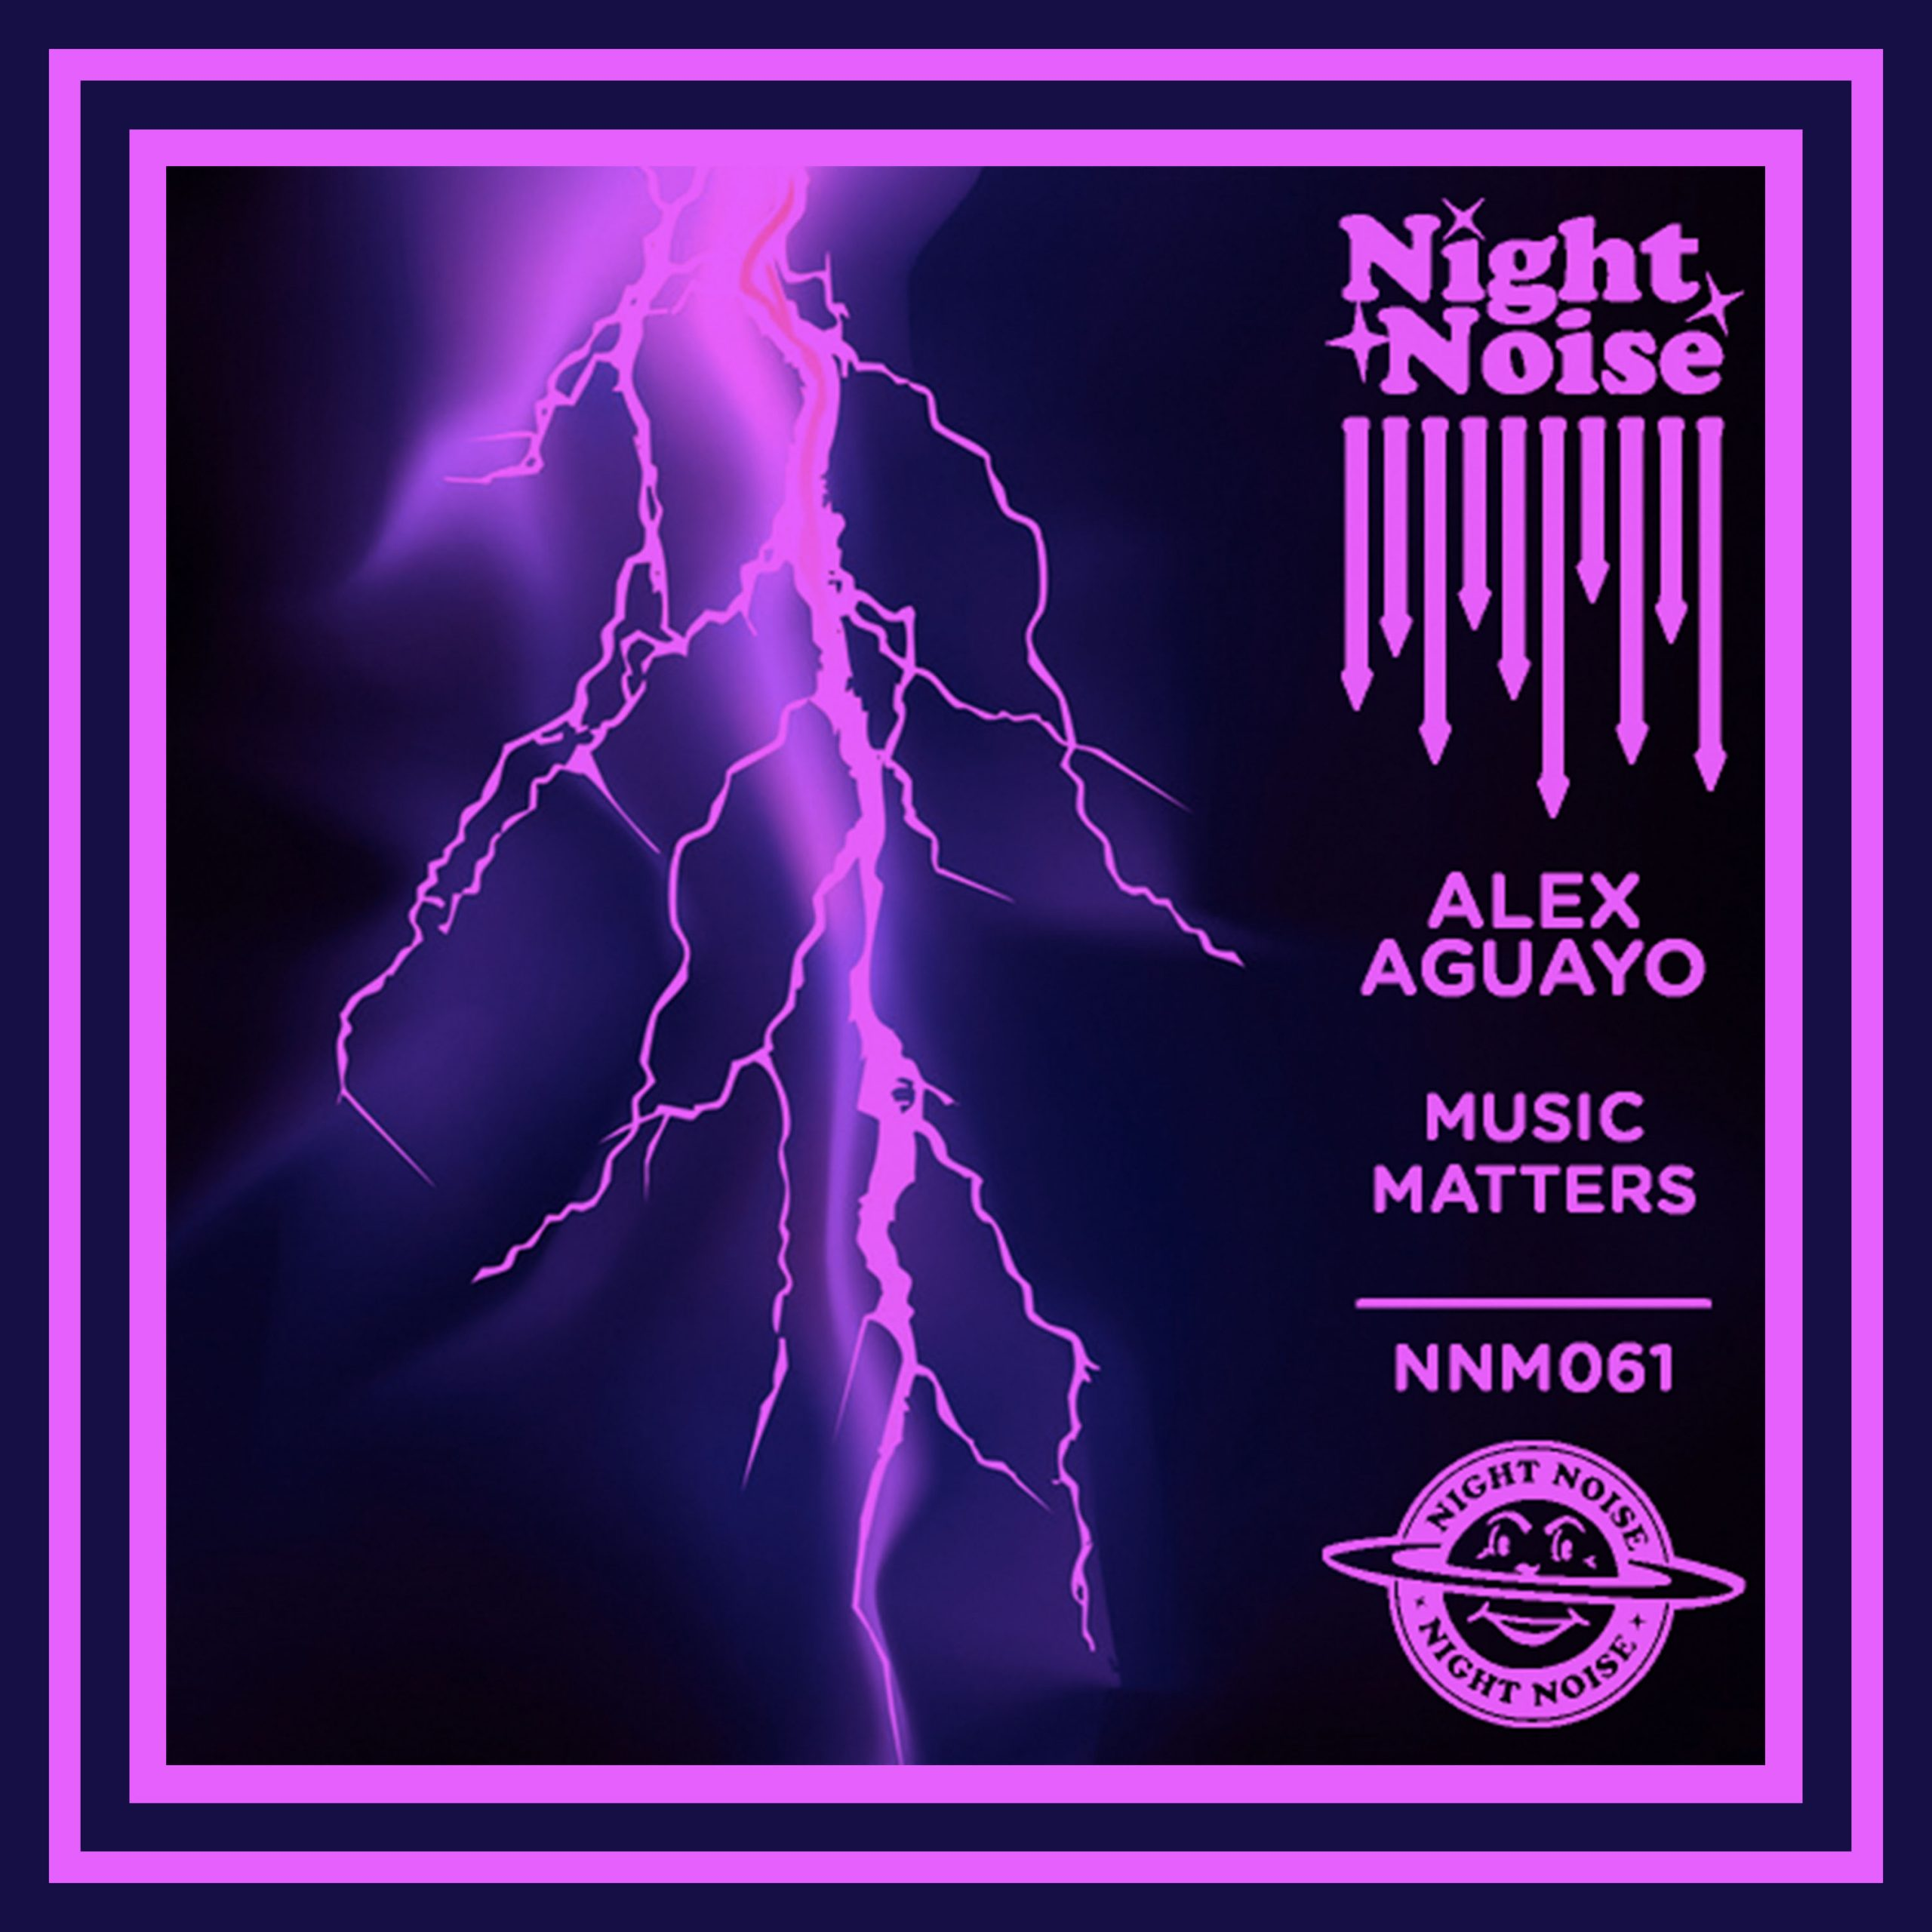 PREMIERE: Alex Aguayo - Physical [Night Noise]